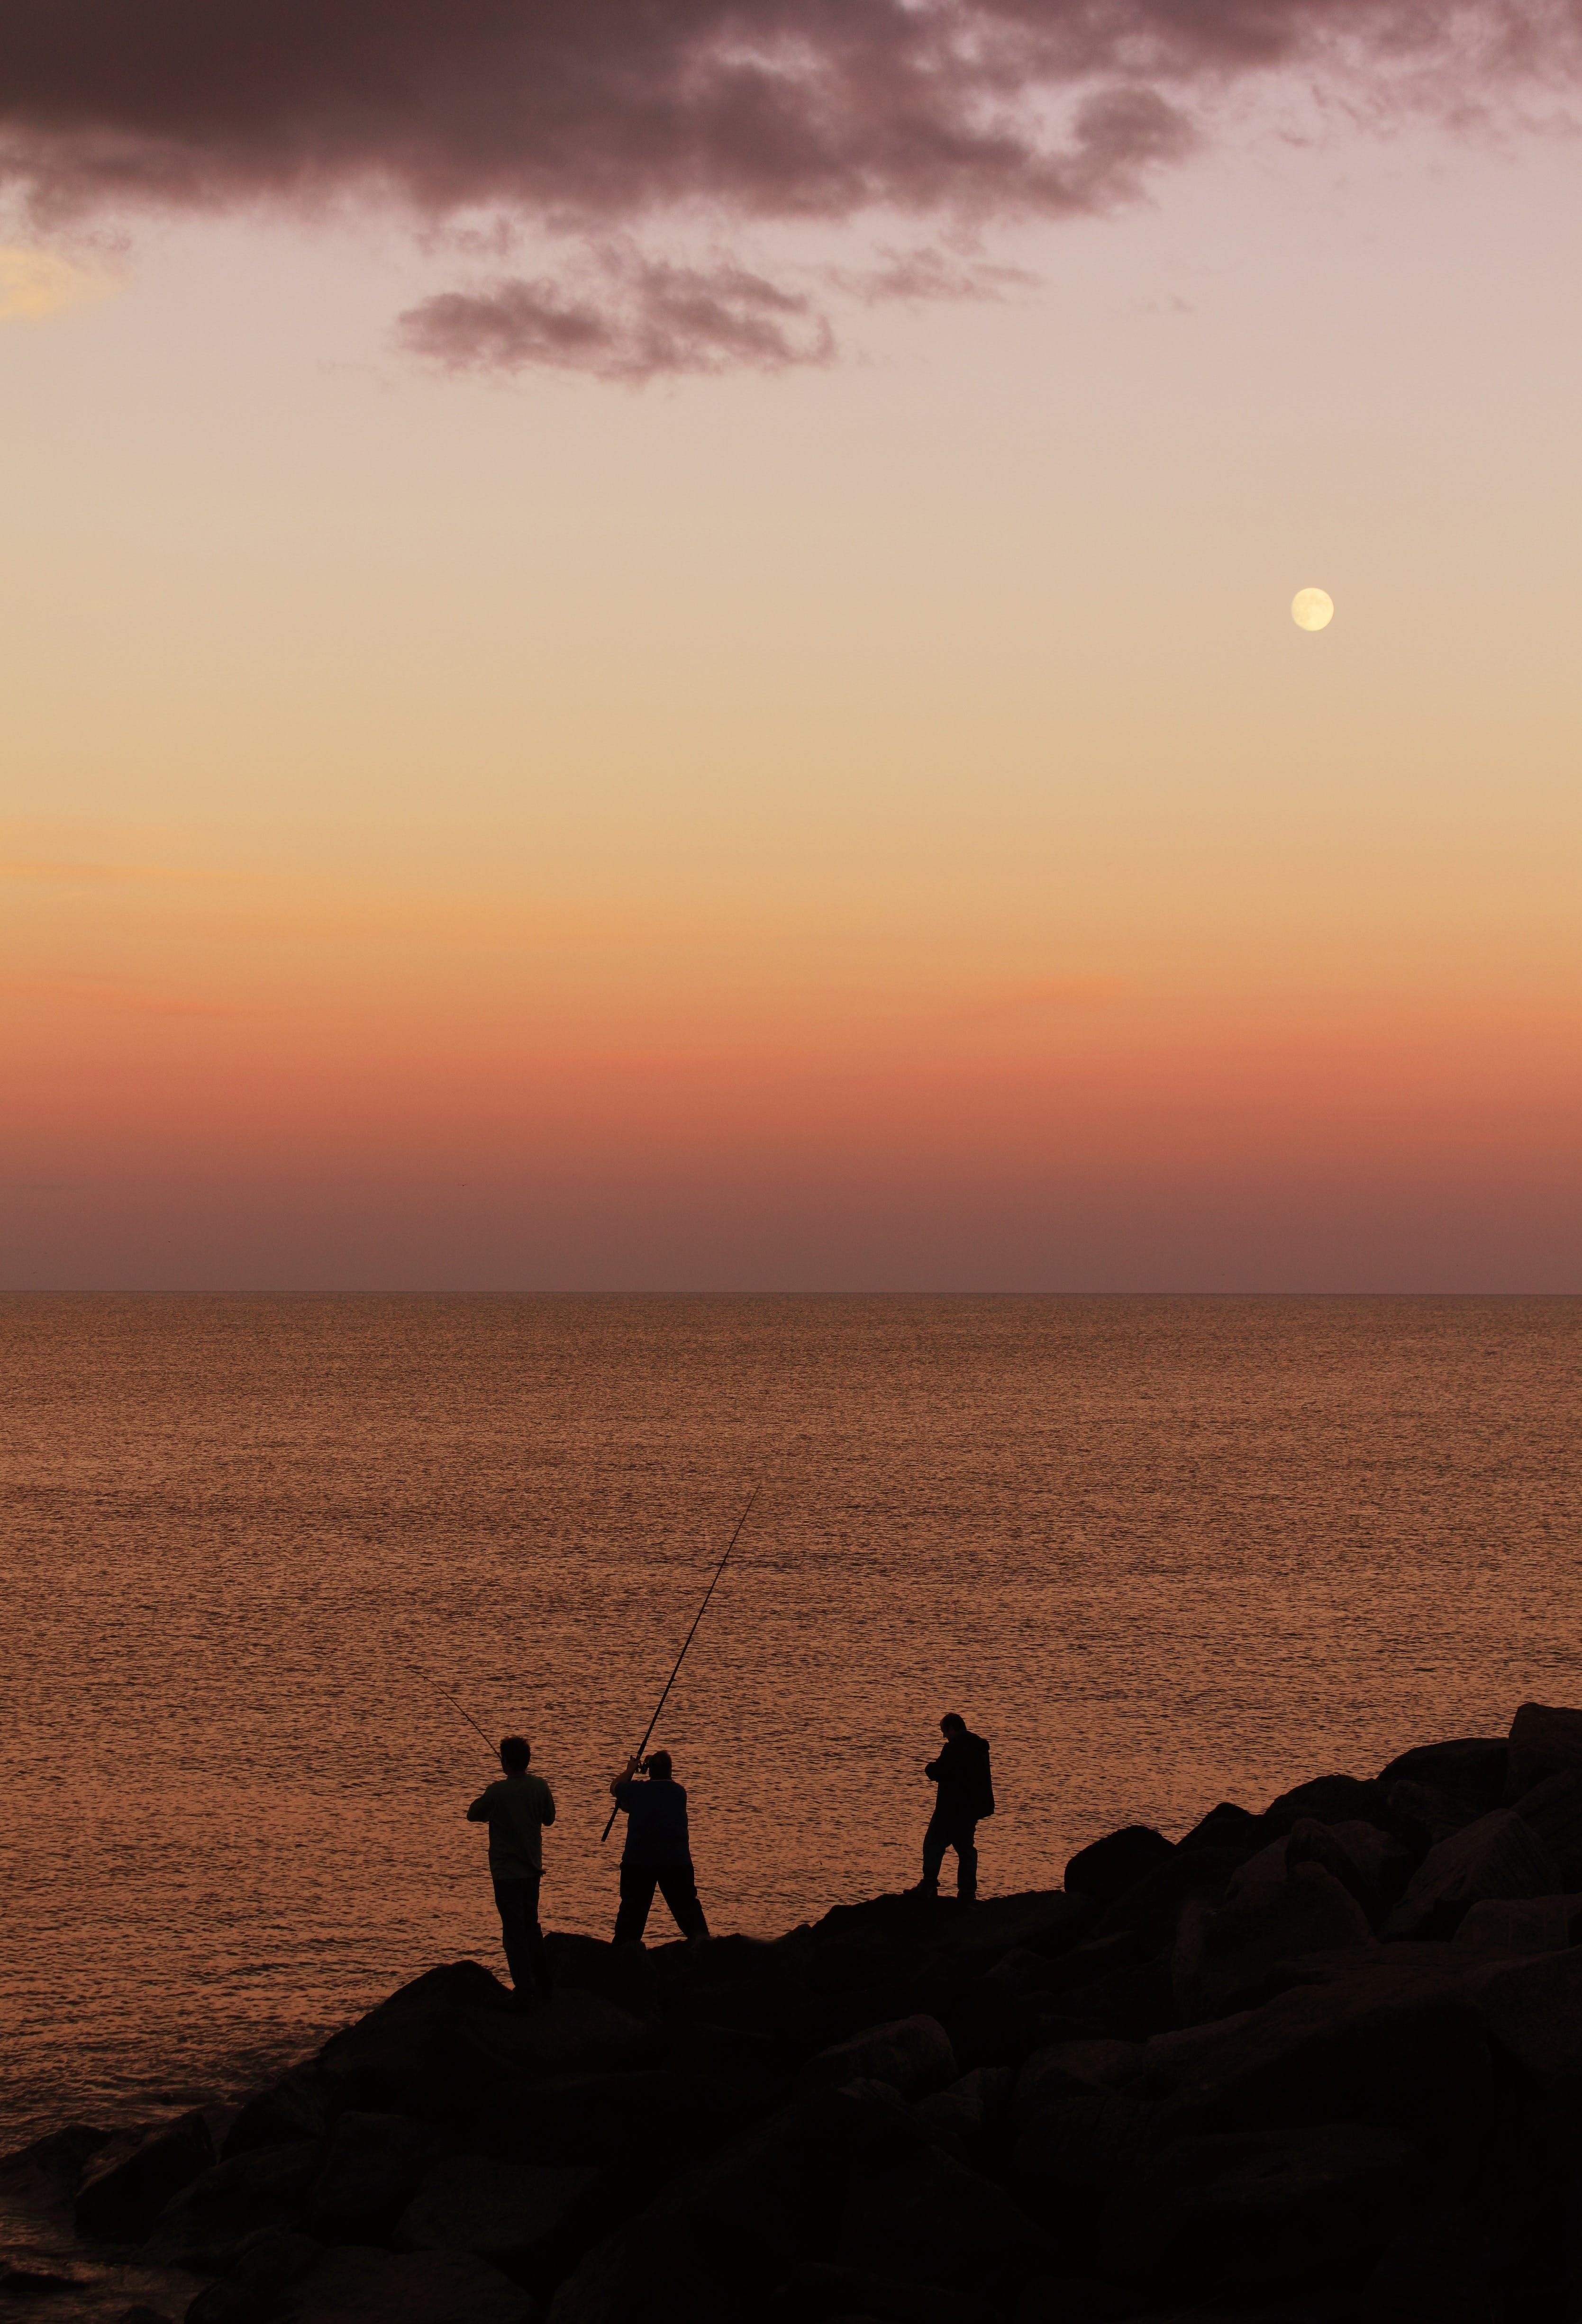 Silhouette of Person Fishing Near at Seashore